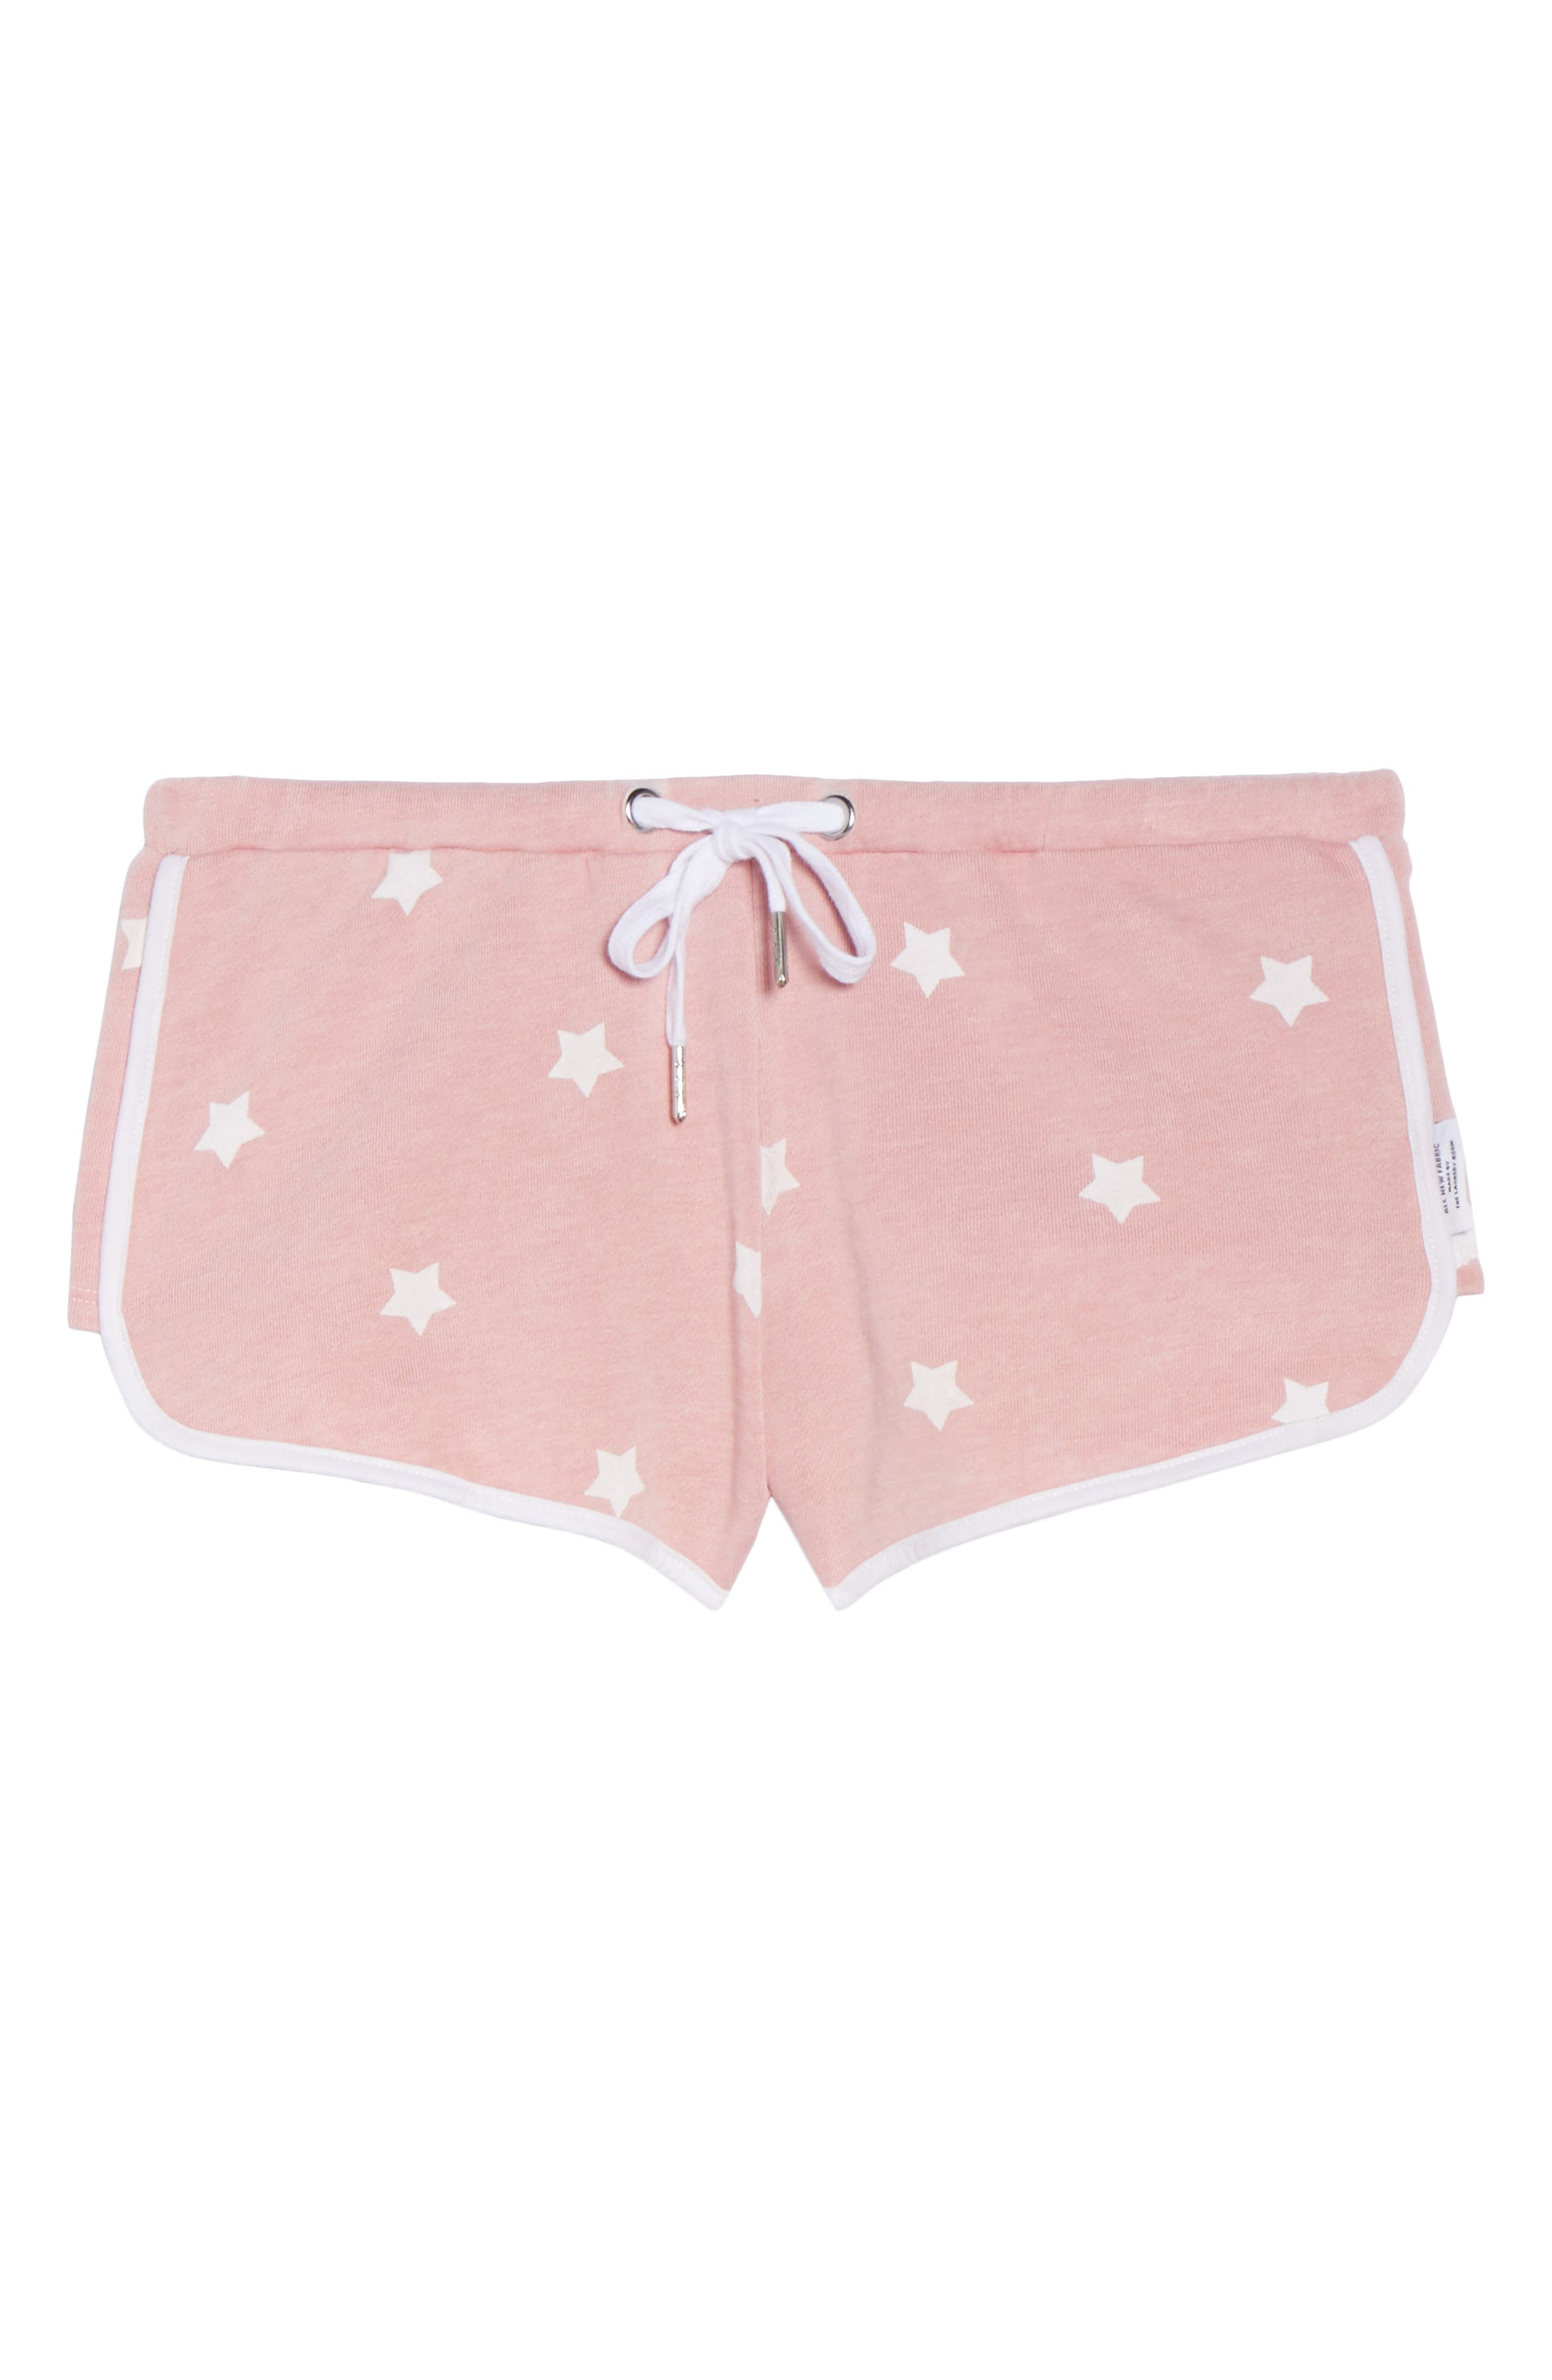 Cozy Crew Lounge Shorts,                             Alternate thumbnail 4, color,                             Champagne Star